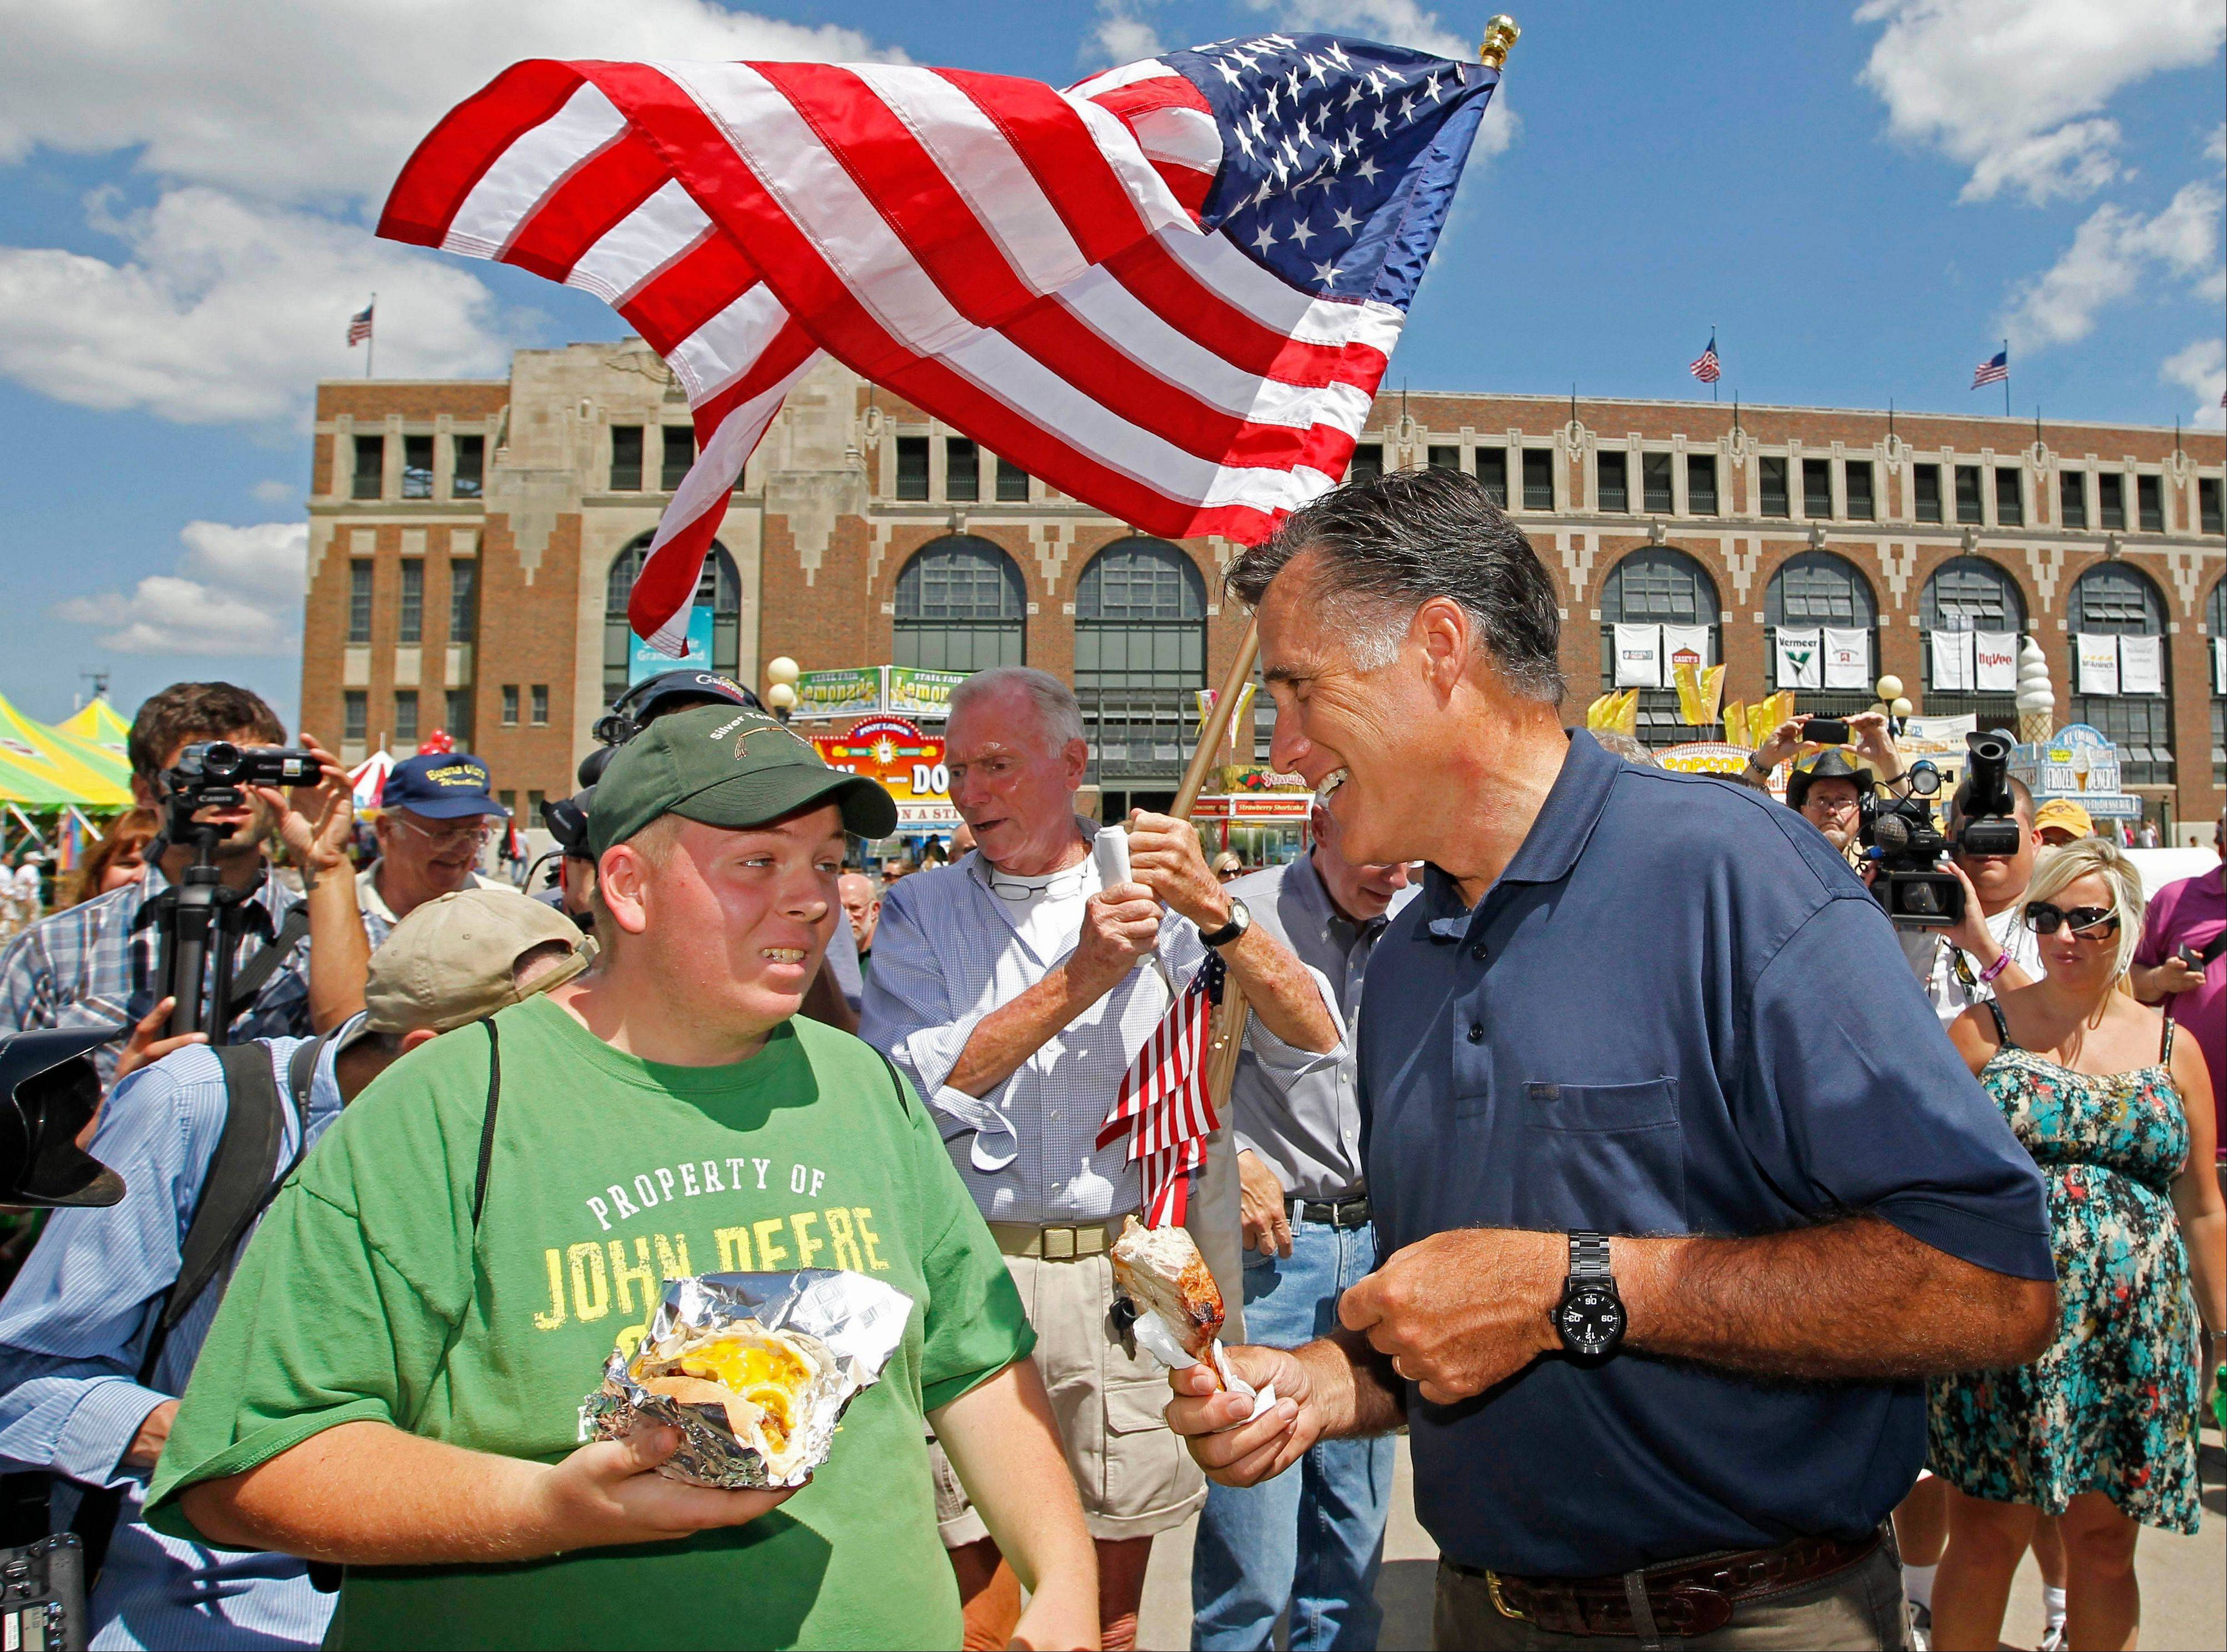 Republican presidential candidate former Massachusetts Gov. Mitt Romney, holding a pork chop on a stick, talks to visitors as he campaigns at the Iowa State Fair in Des Moines on Thursday.